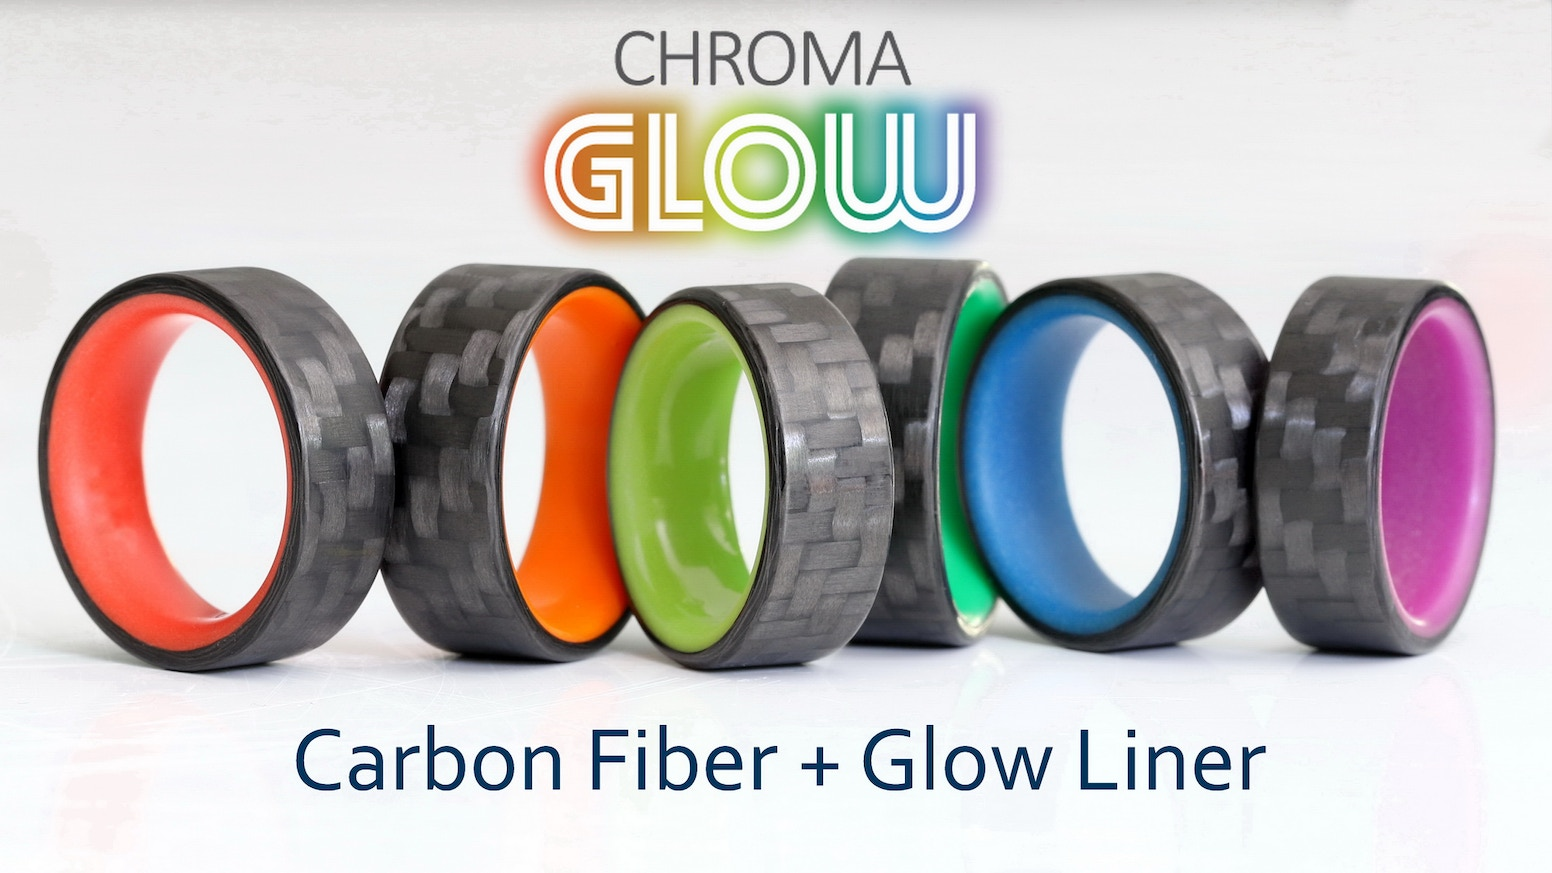 Wear your true colors with pride! Pure carbon fiber ring with a vibrant glowing liner in six rainbow-colored choices.